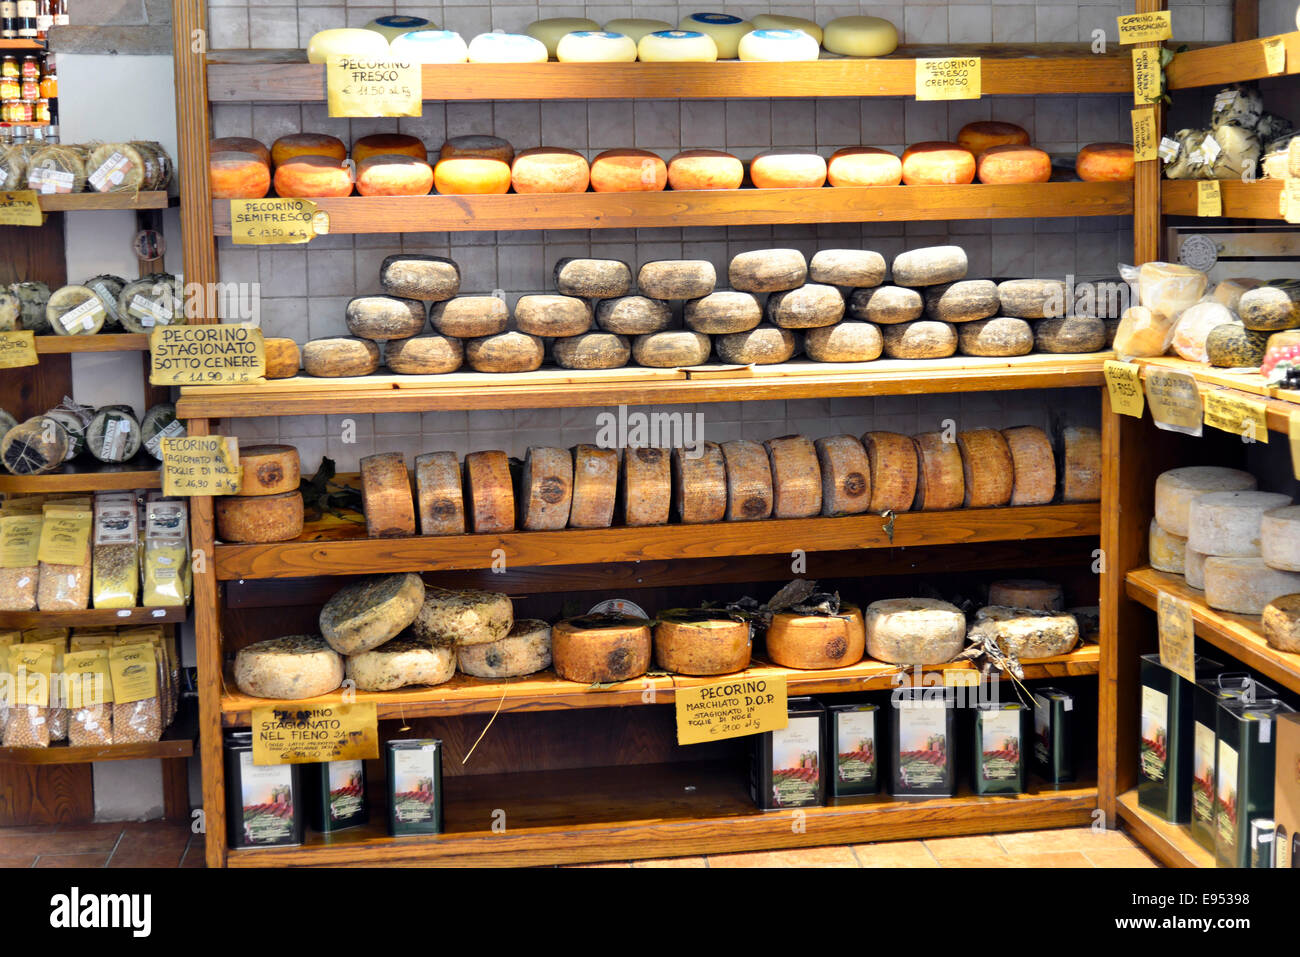 Pecorino cheese on sale in a specialty shop, Pienza, Siena Province, Tuscany, Italy - Stock Image